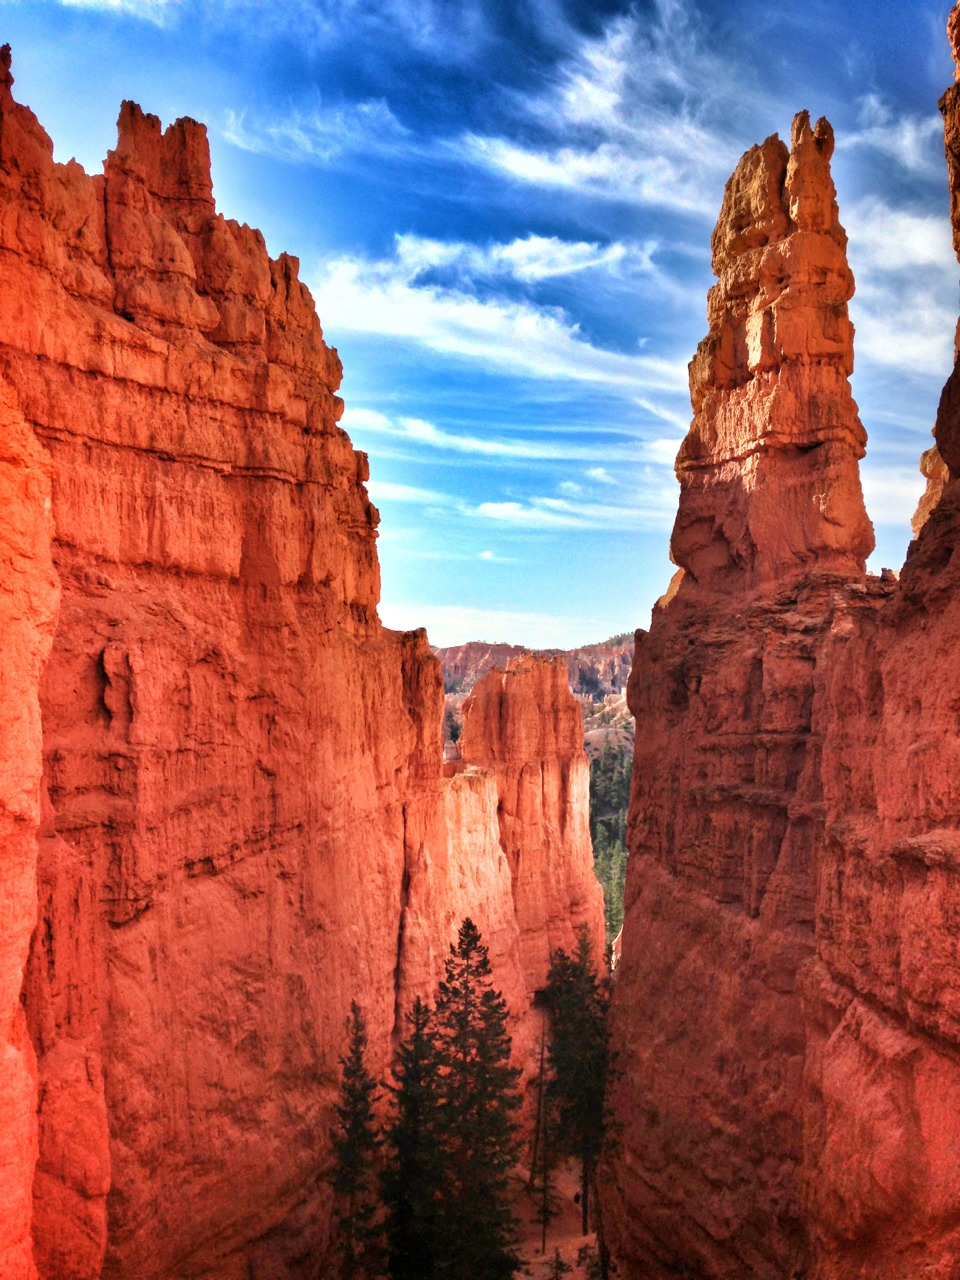 Hikes Bryce Canyon National Park today. It was incredible.